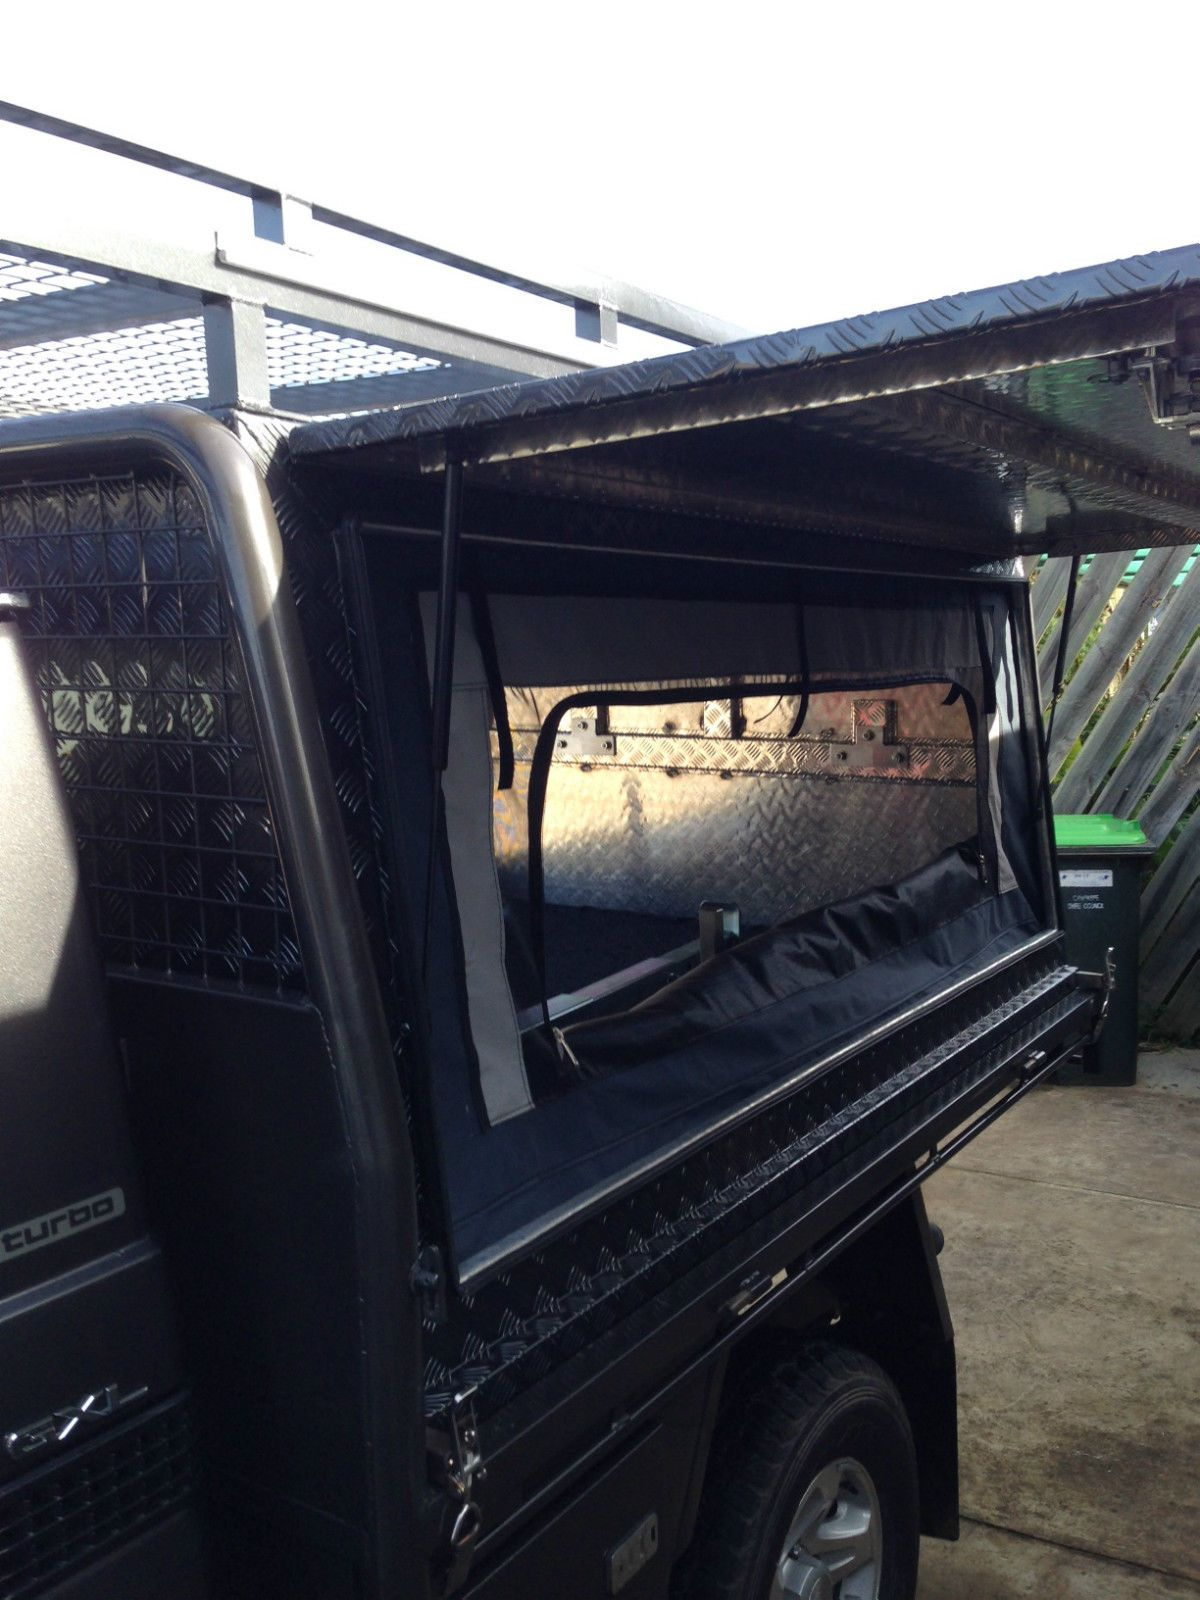 Lift OFF Canopy C&ing Canopy Canvas OFF Road C&er Trailer Landcruiser in Parkdale VIC |  sc 1 st  Pinterest & Lift OFF Canopy Camping Canopy Canvas OFF Road Camper Trailer ...